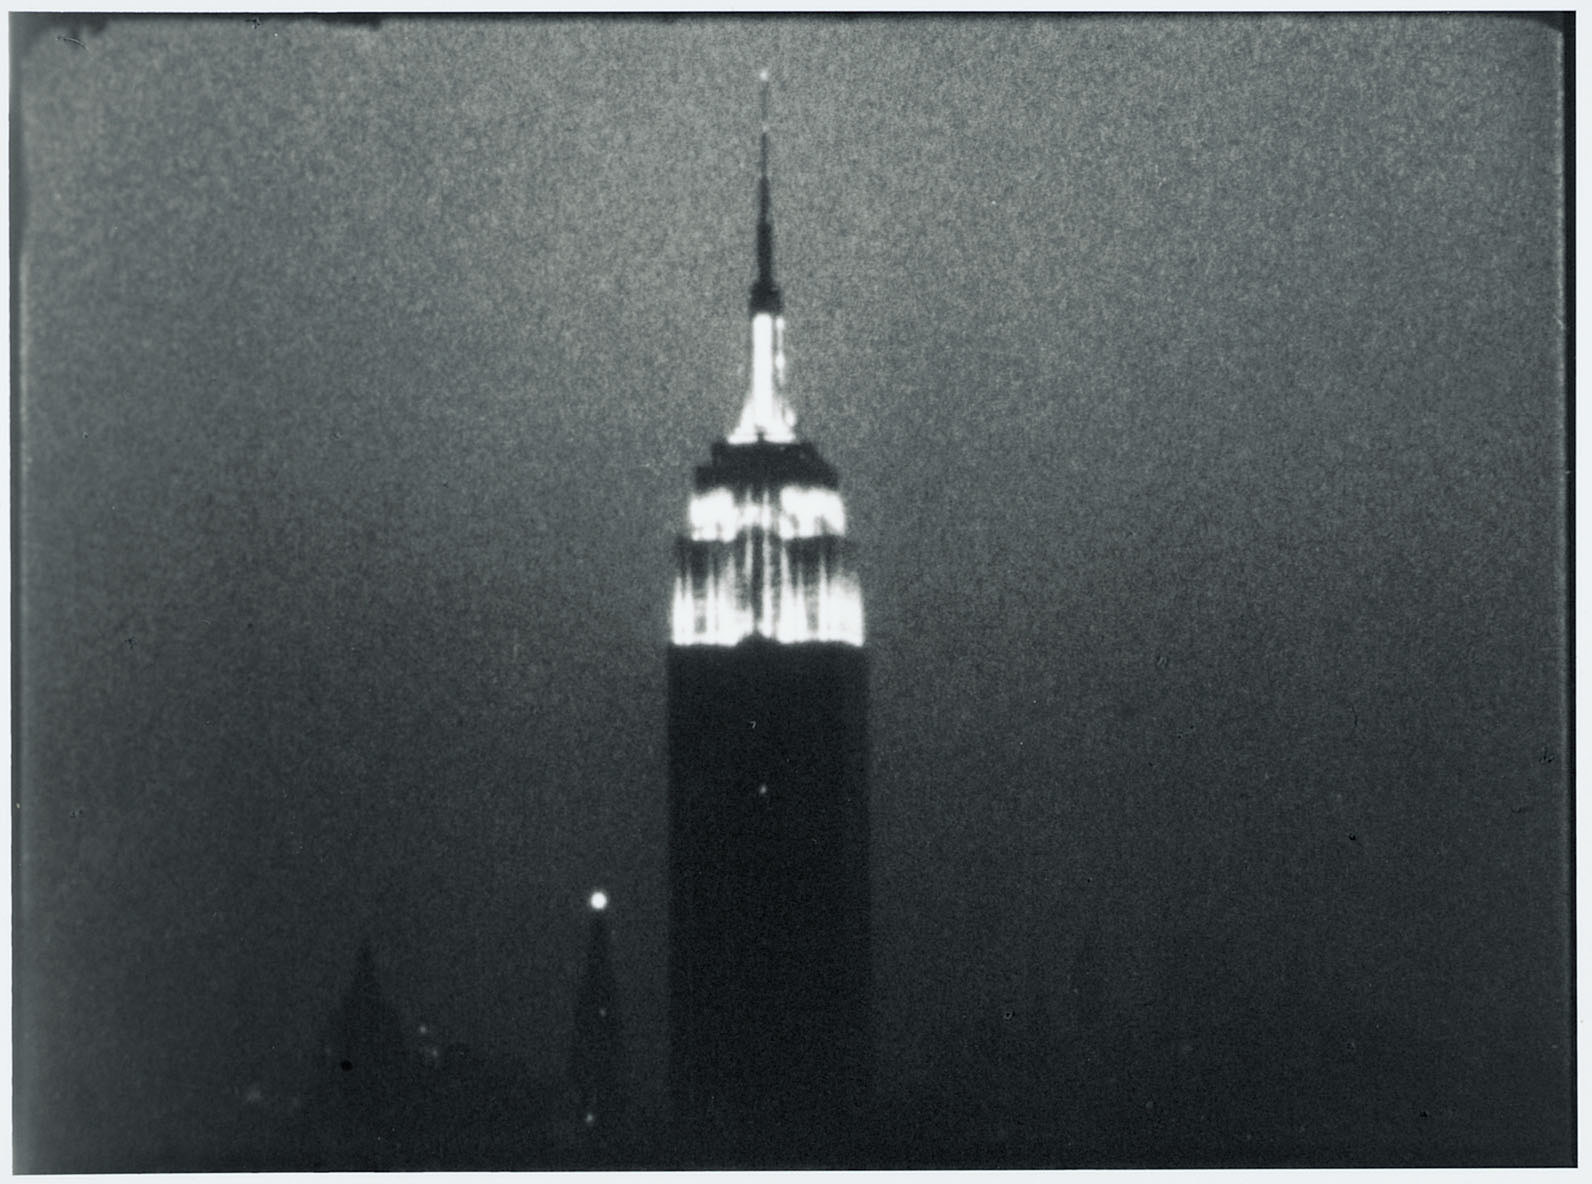 Andy Warhol. Empire. 1964